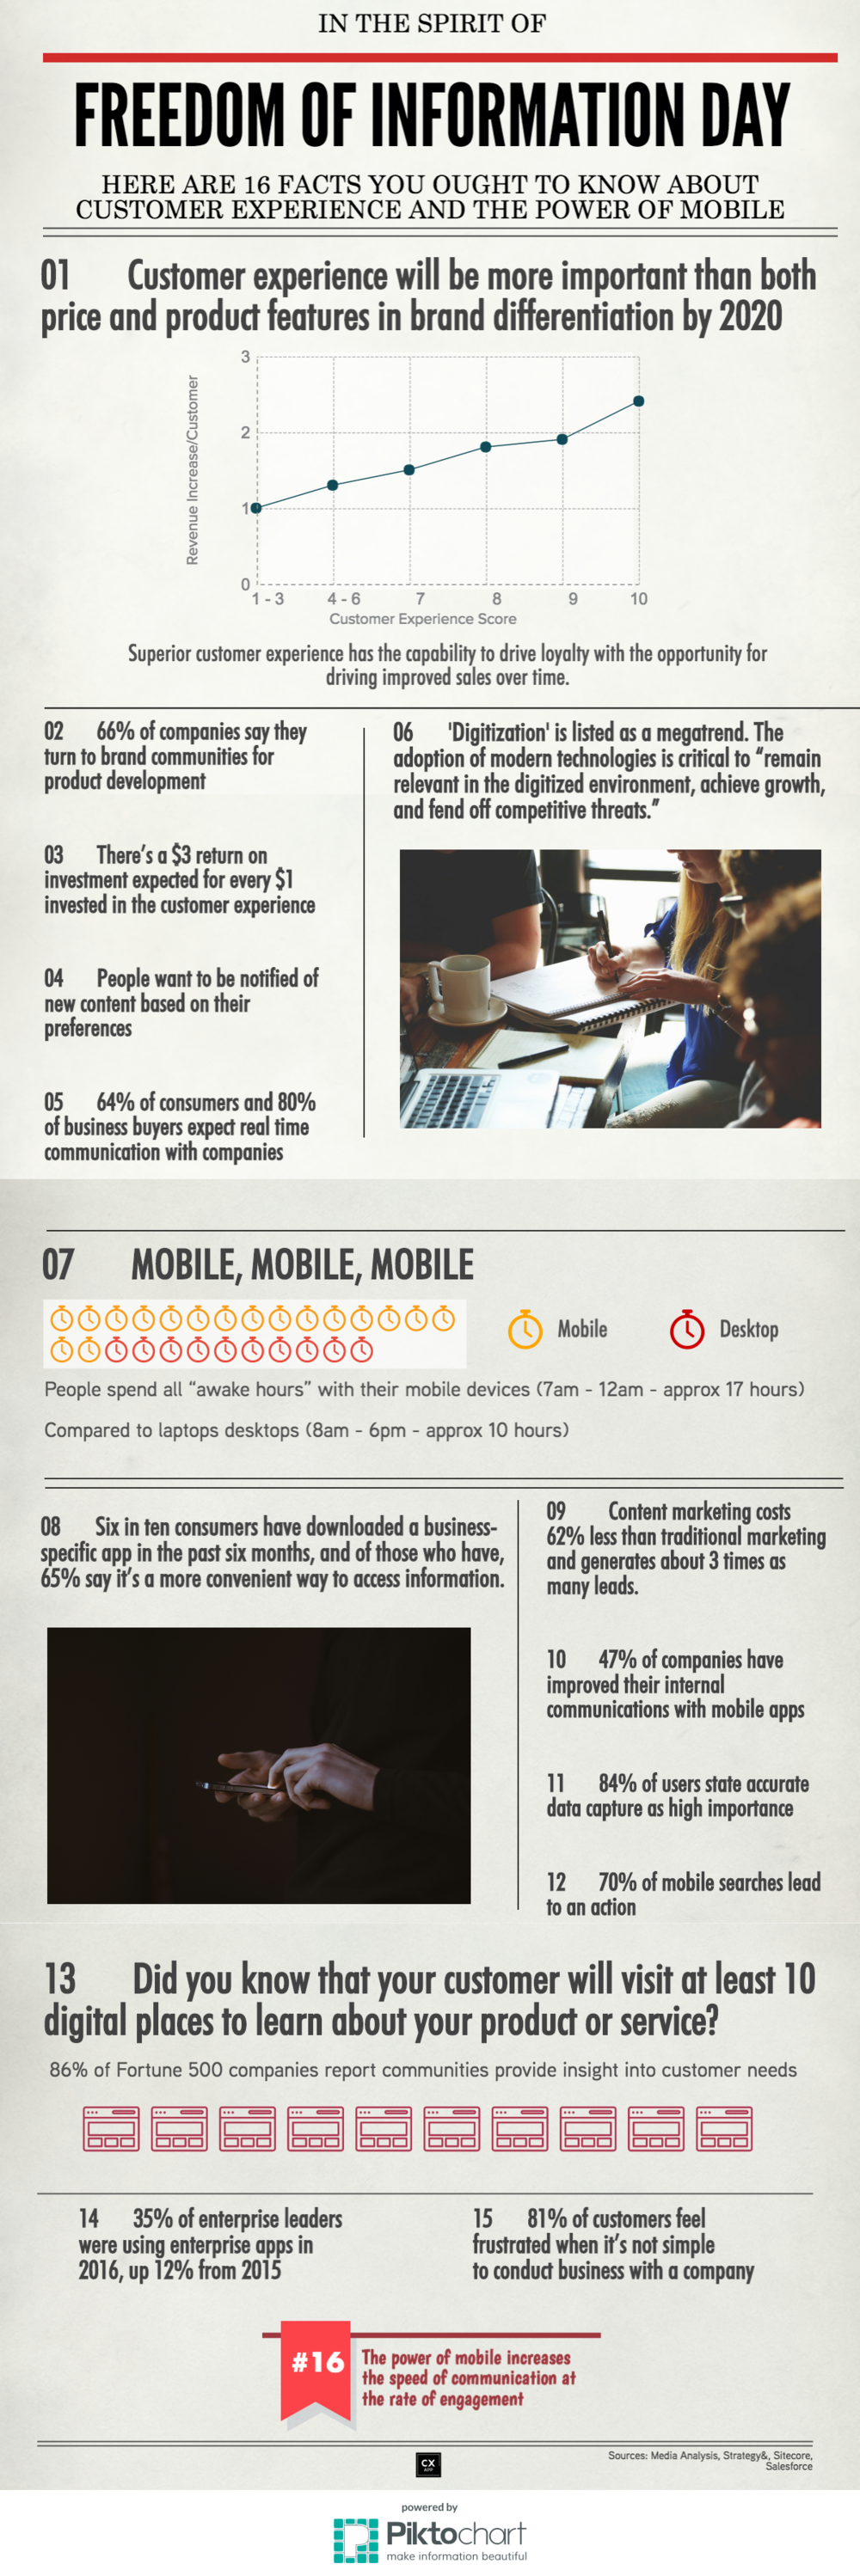 16 Fast Facts & Stats About Customer Experience & Mobile